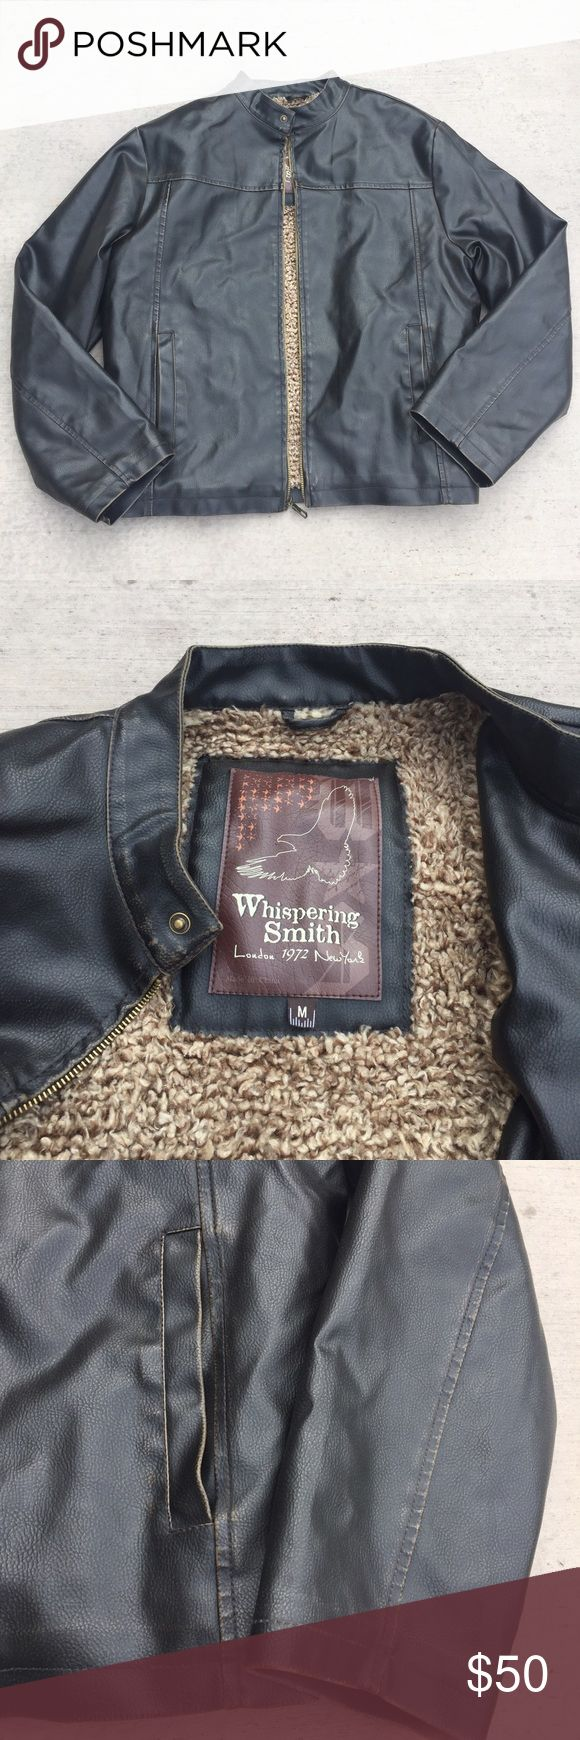 """Whispering Smith Faux Leather Jacket • 100% polyester with PVC coating • Zip up and button closure • Faux shearling lining • Two pockets at front and one inside pocket • Length approx 26"""" • Color fading along the seams throughout the jacket and pockets from wear Whispering Smith Jackets & Coats"""